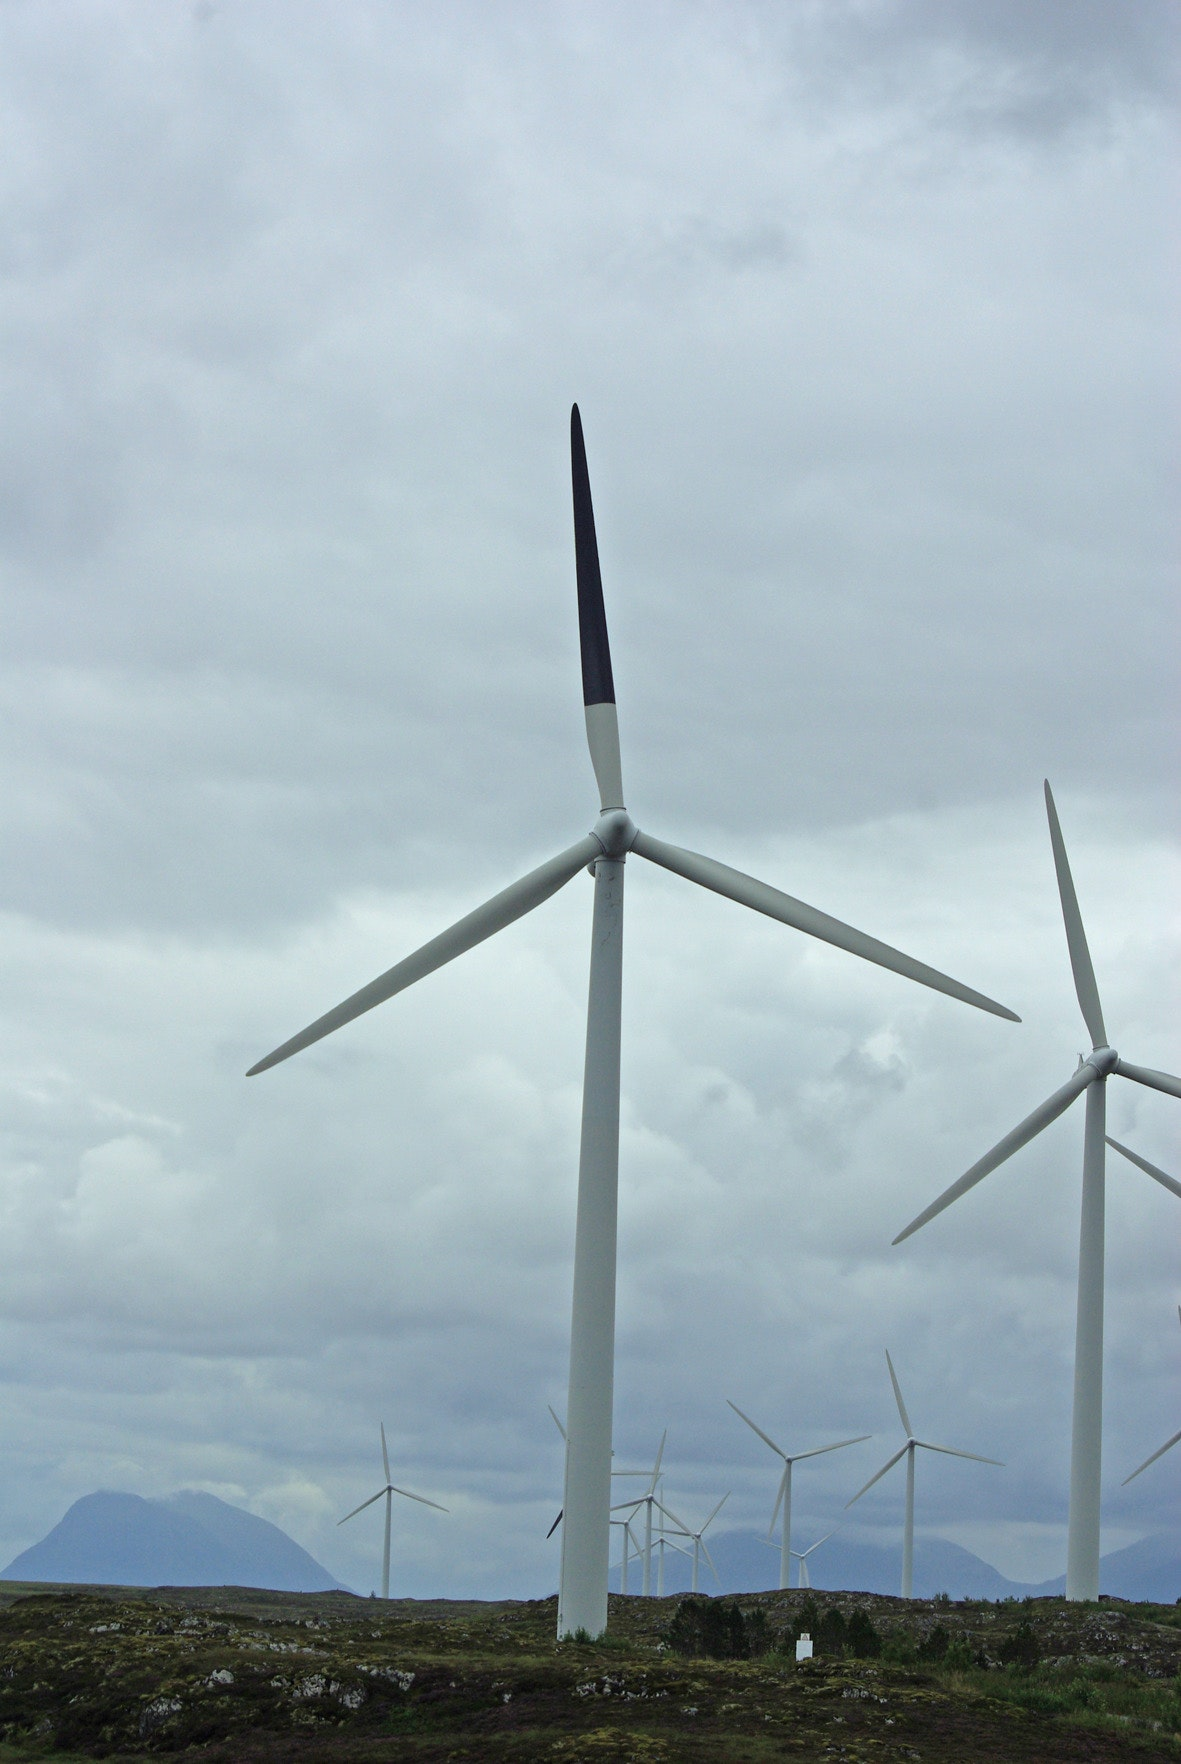 A wind turbine with one blade painted black, with several unpainted turbines in the background.